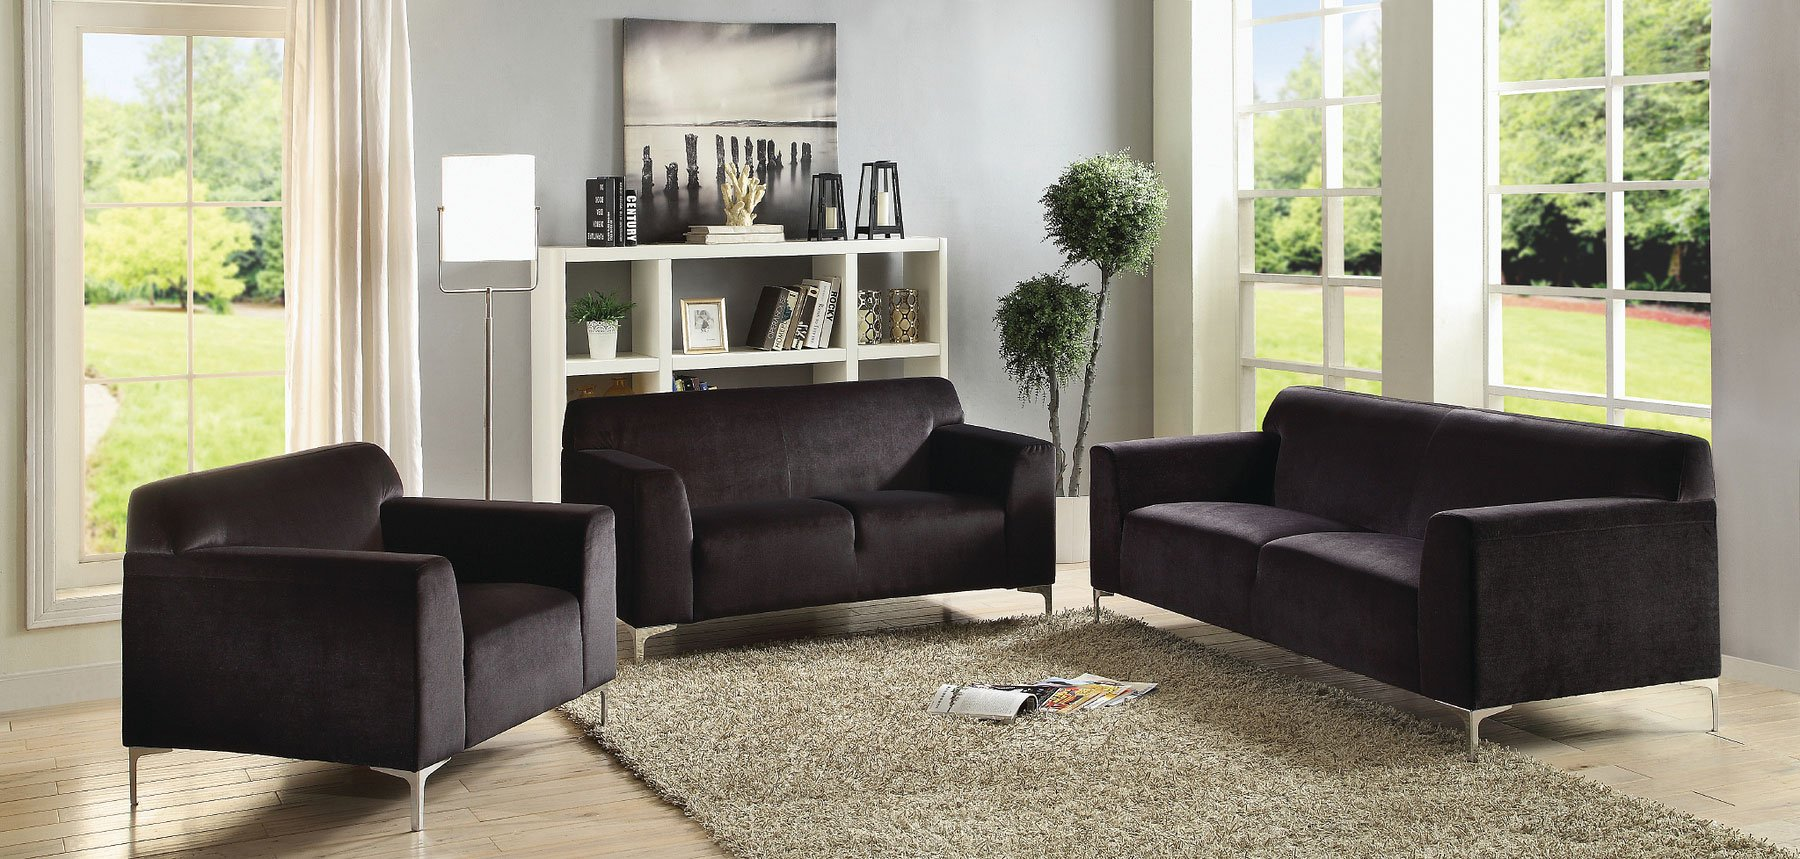 G331 Living Room Set Black By Glory Furniture